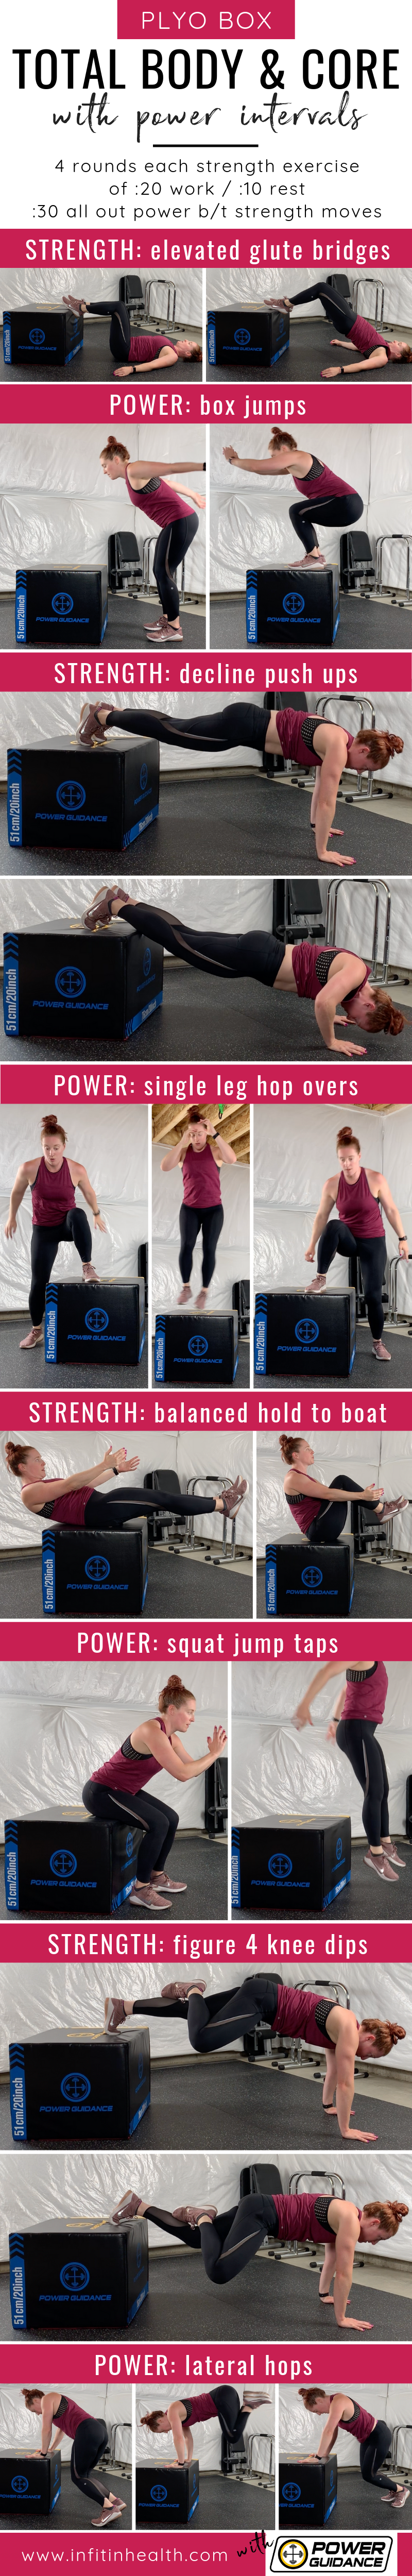 Plyo Box Total Body & Core with Power Intervals